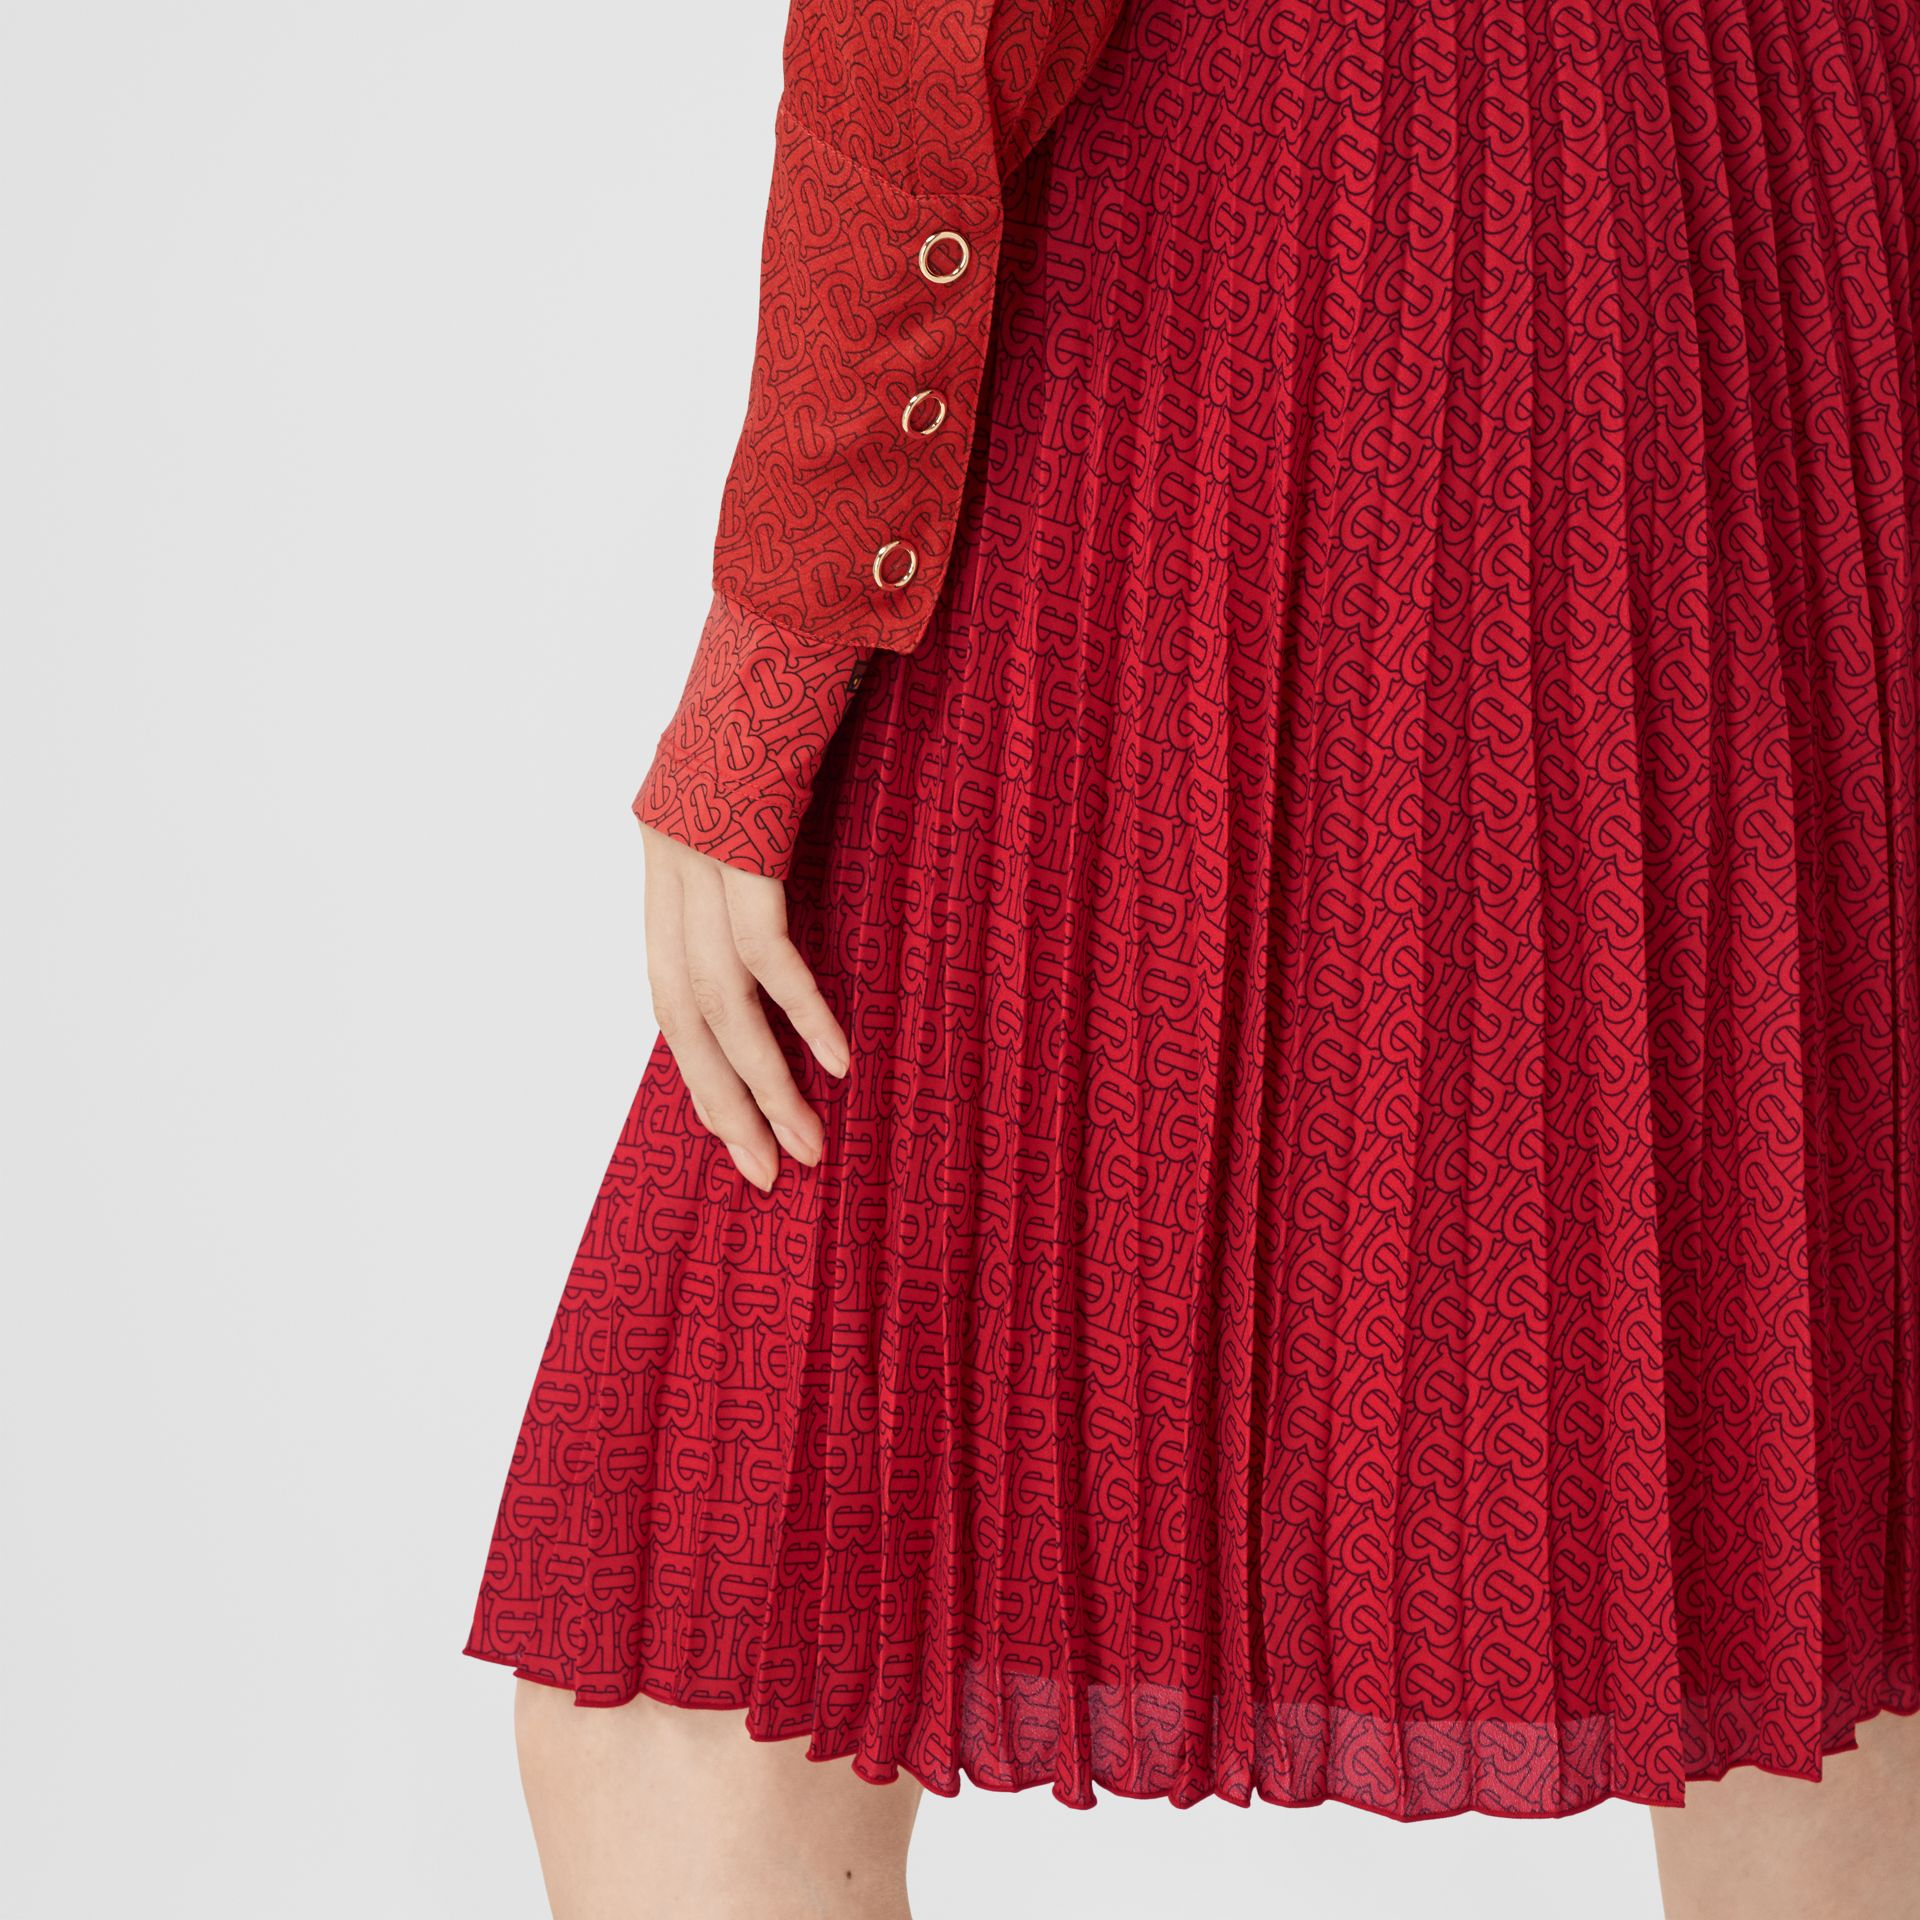 Monogram Print Pleated Skirt in Bright Red - Women | Burberry - gallery image 1